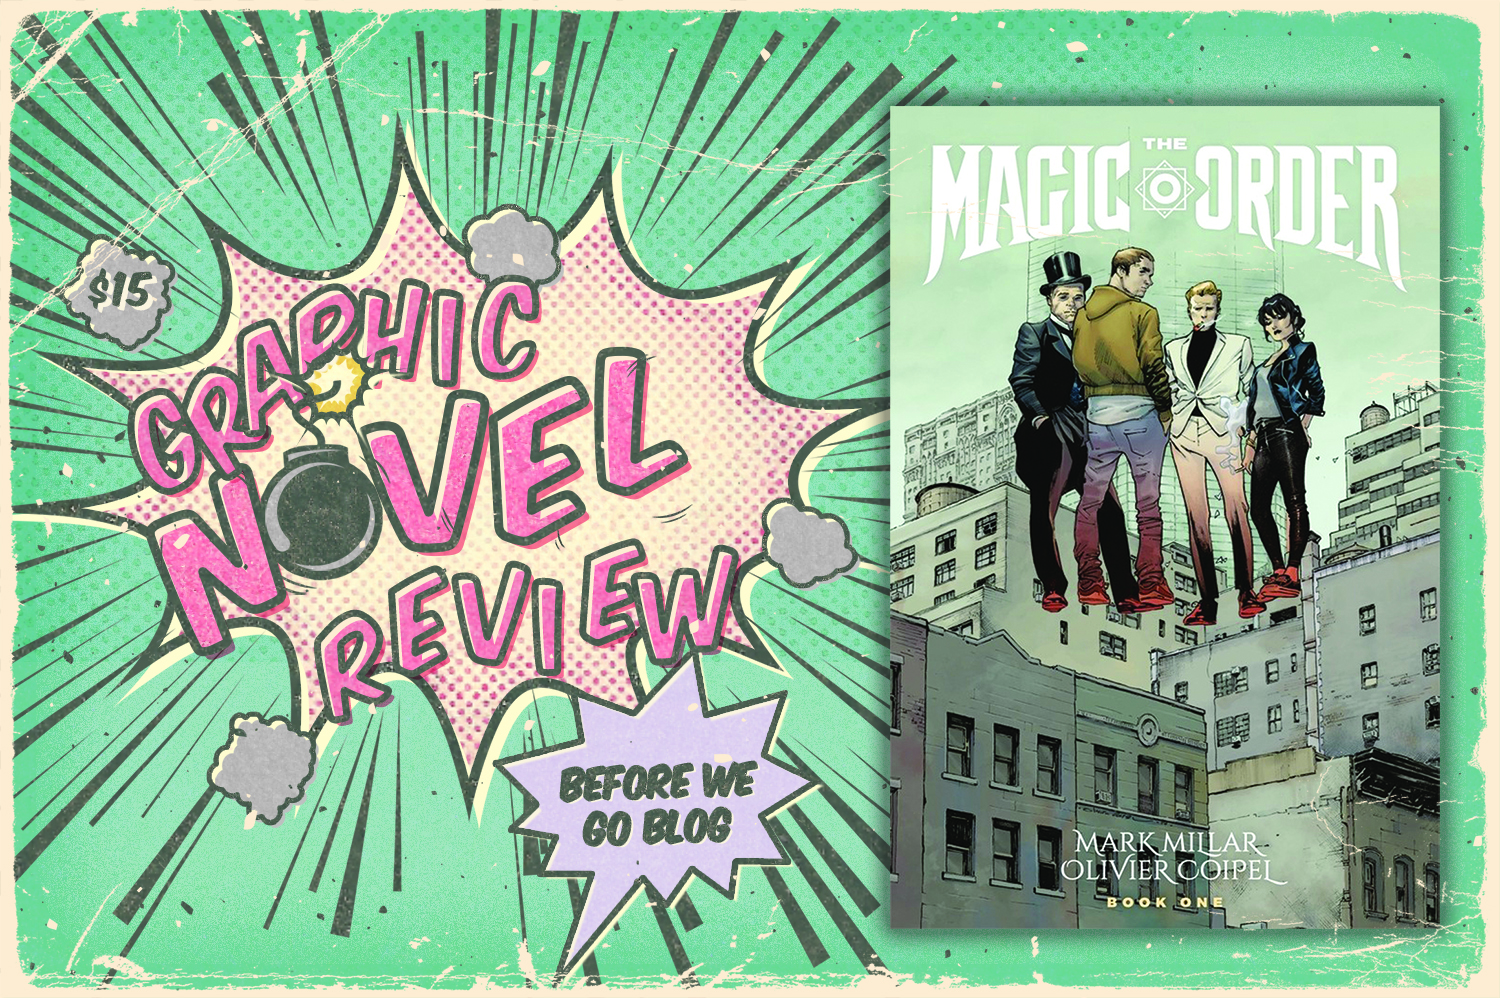 Graphic Novel Review of The Magic Order by Mark Millar and Illustrated by Olivier Coipel